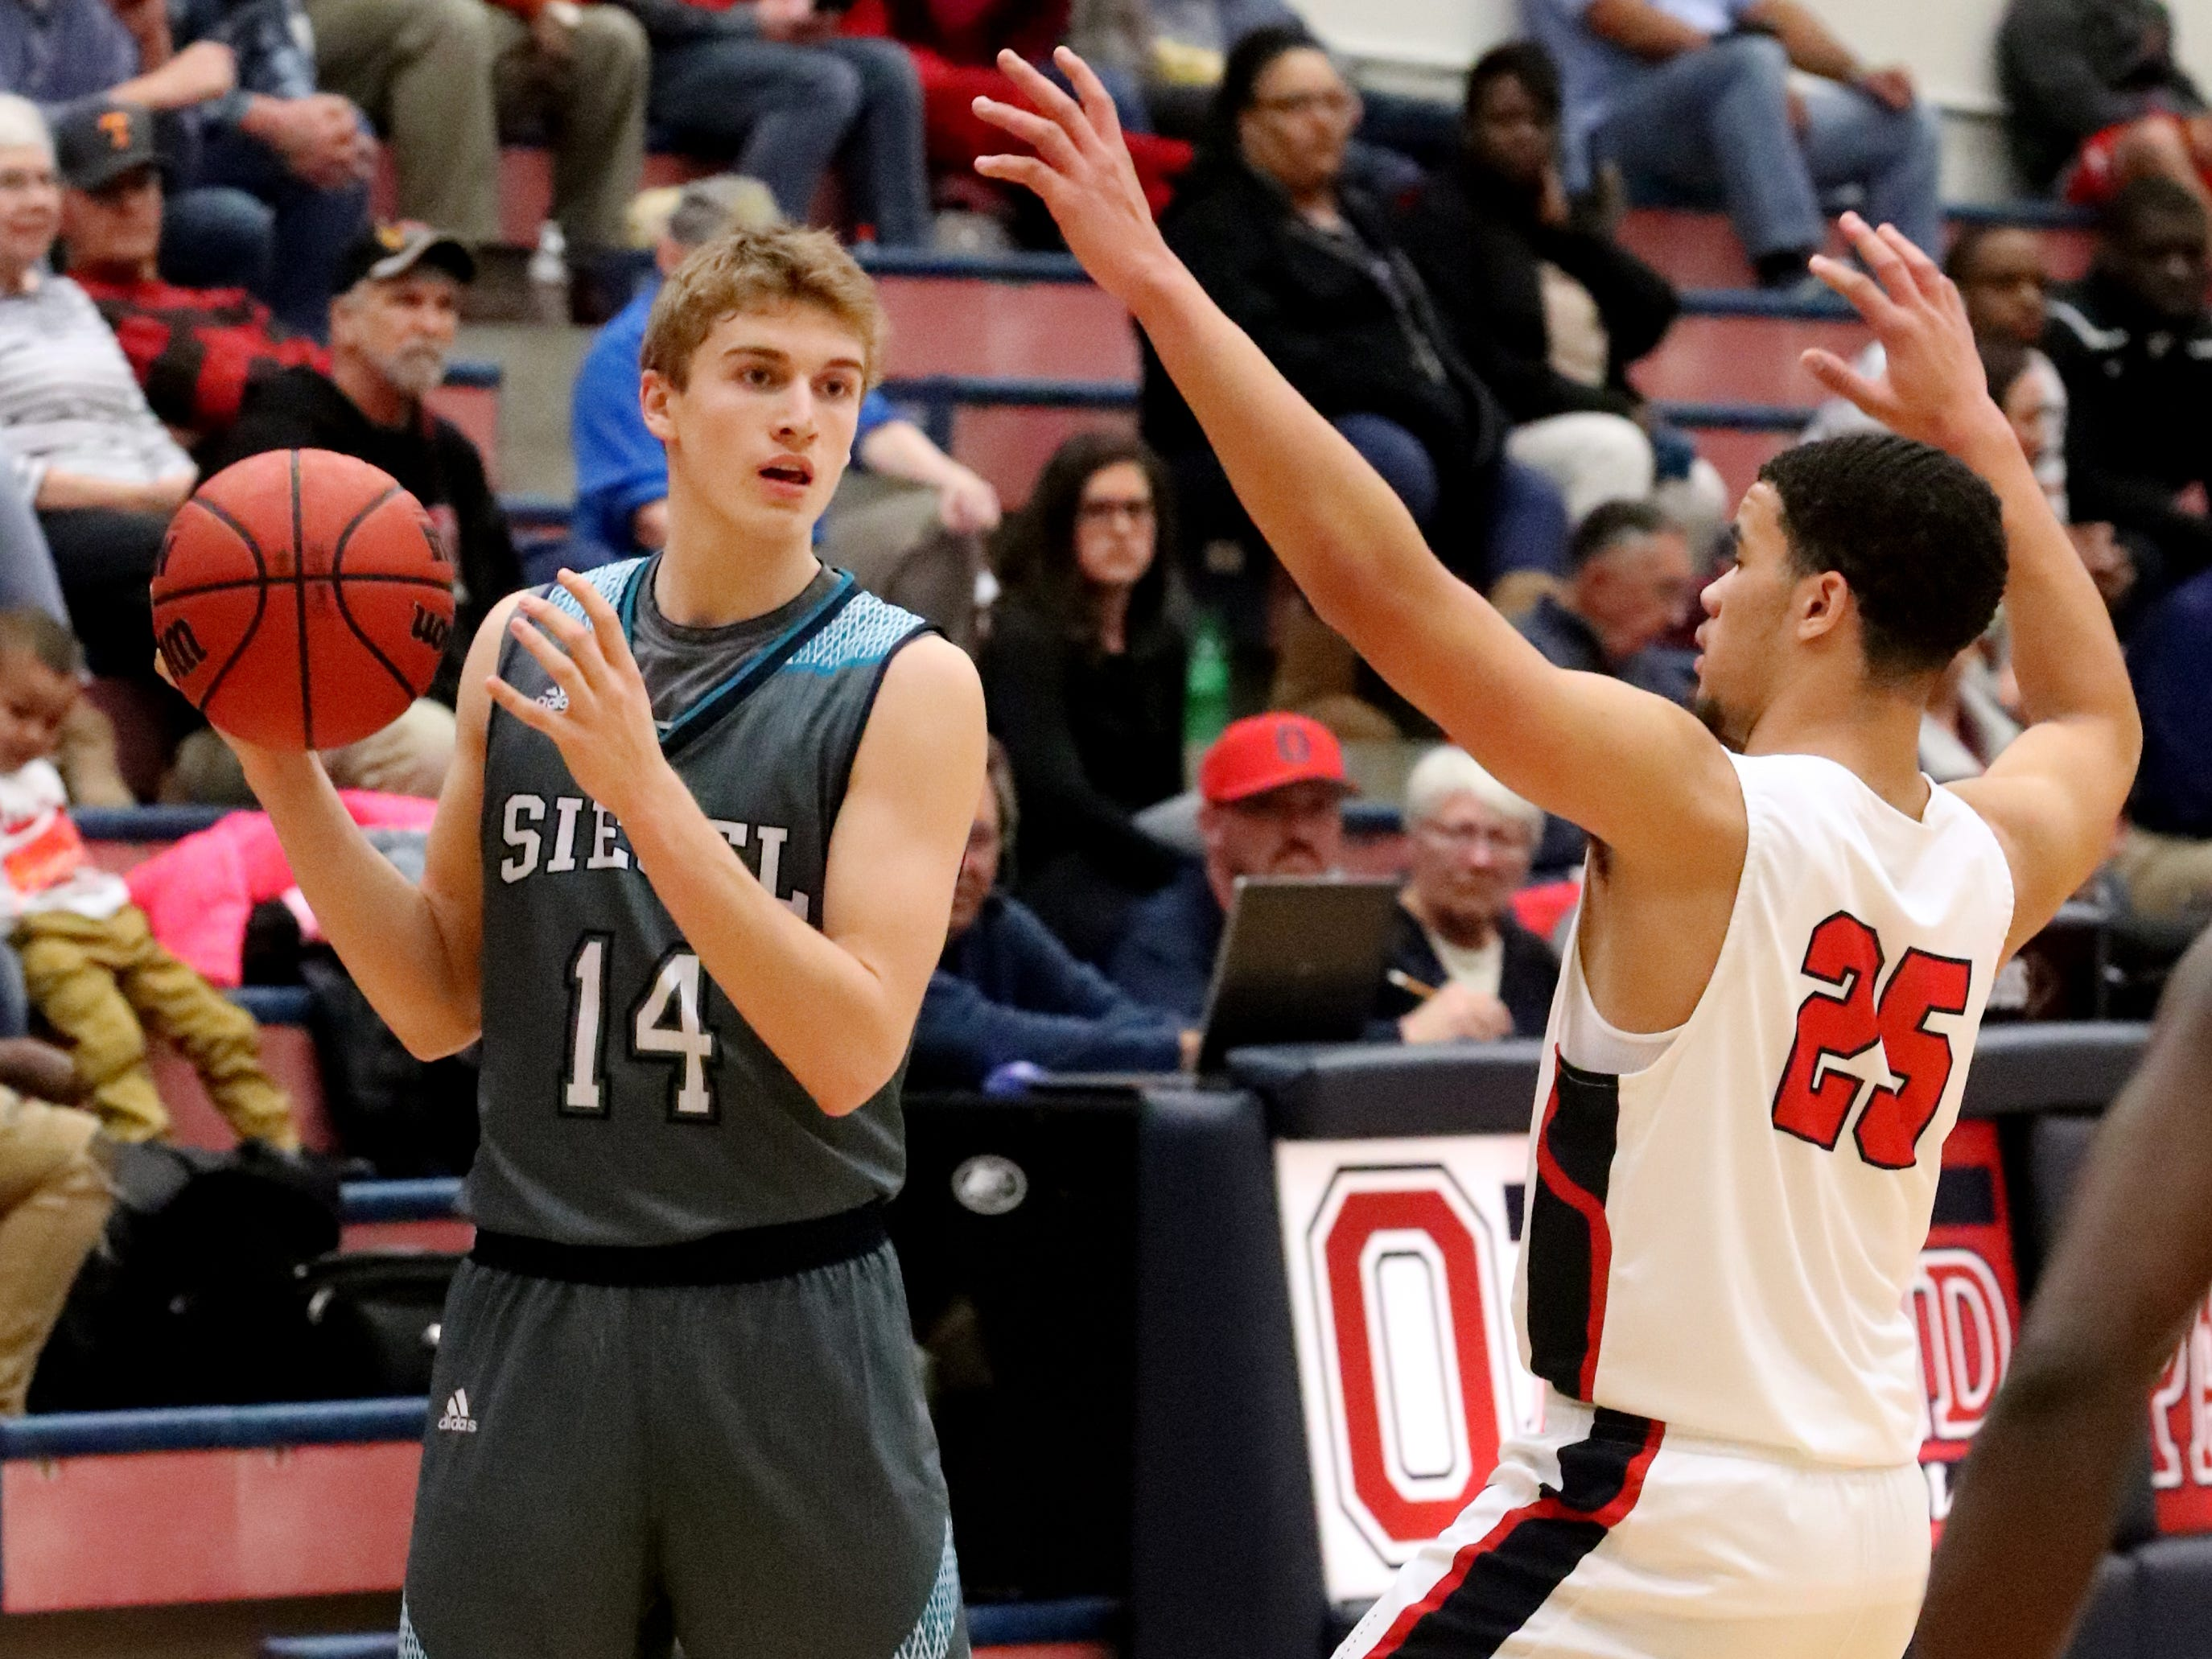 Siegel's Matthew Schneider (14) looks for a player to pass to as Oakland's Lamarius Jackson (25) guards him on Tuesday, Dec.. 4, 2018.